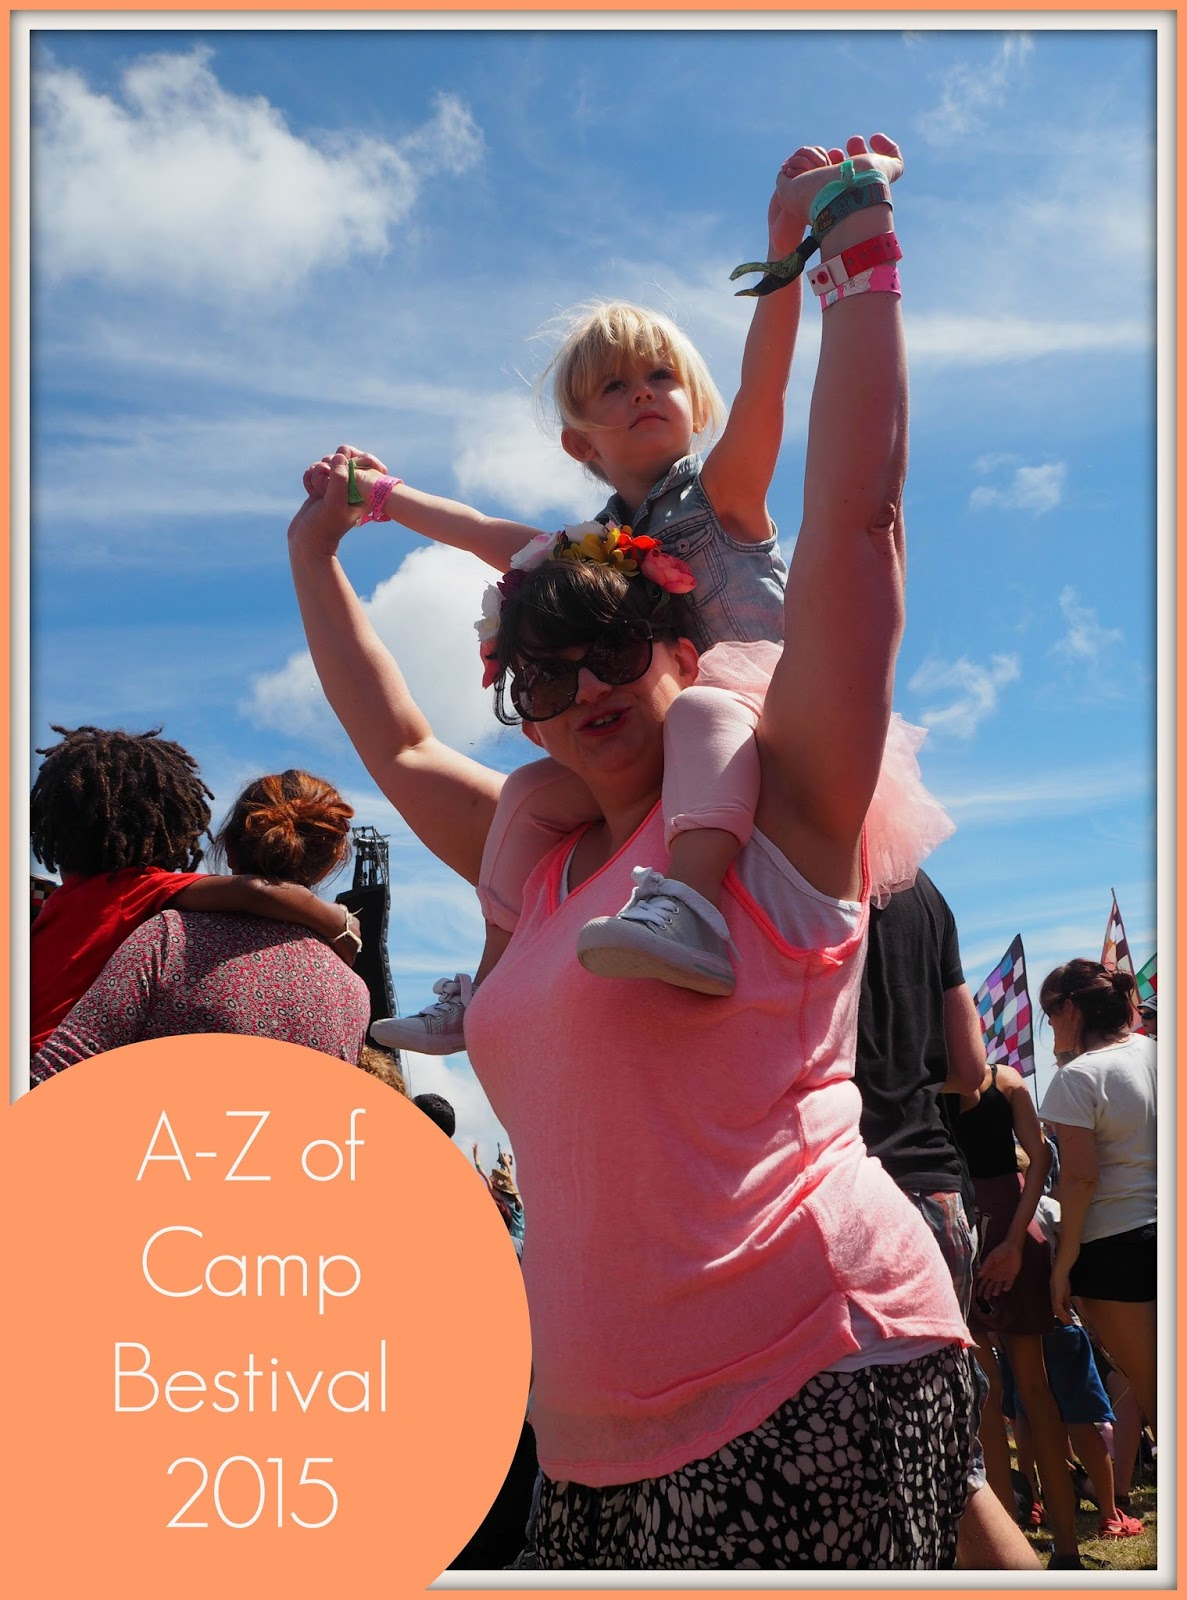 Camp Bestival: An A-Z of our first family festival (part 2)